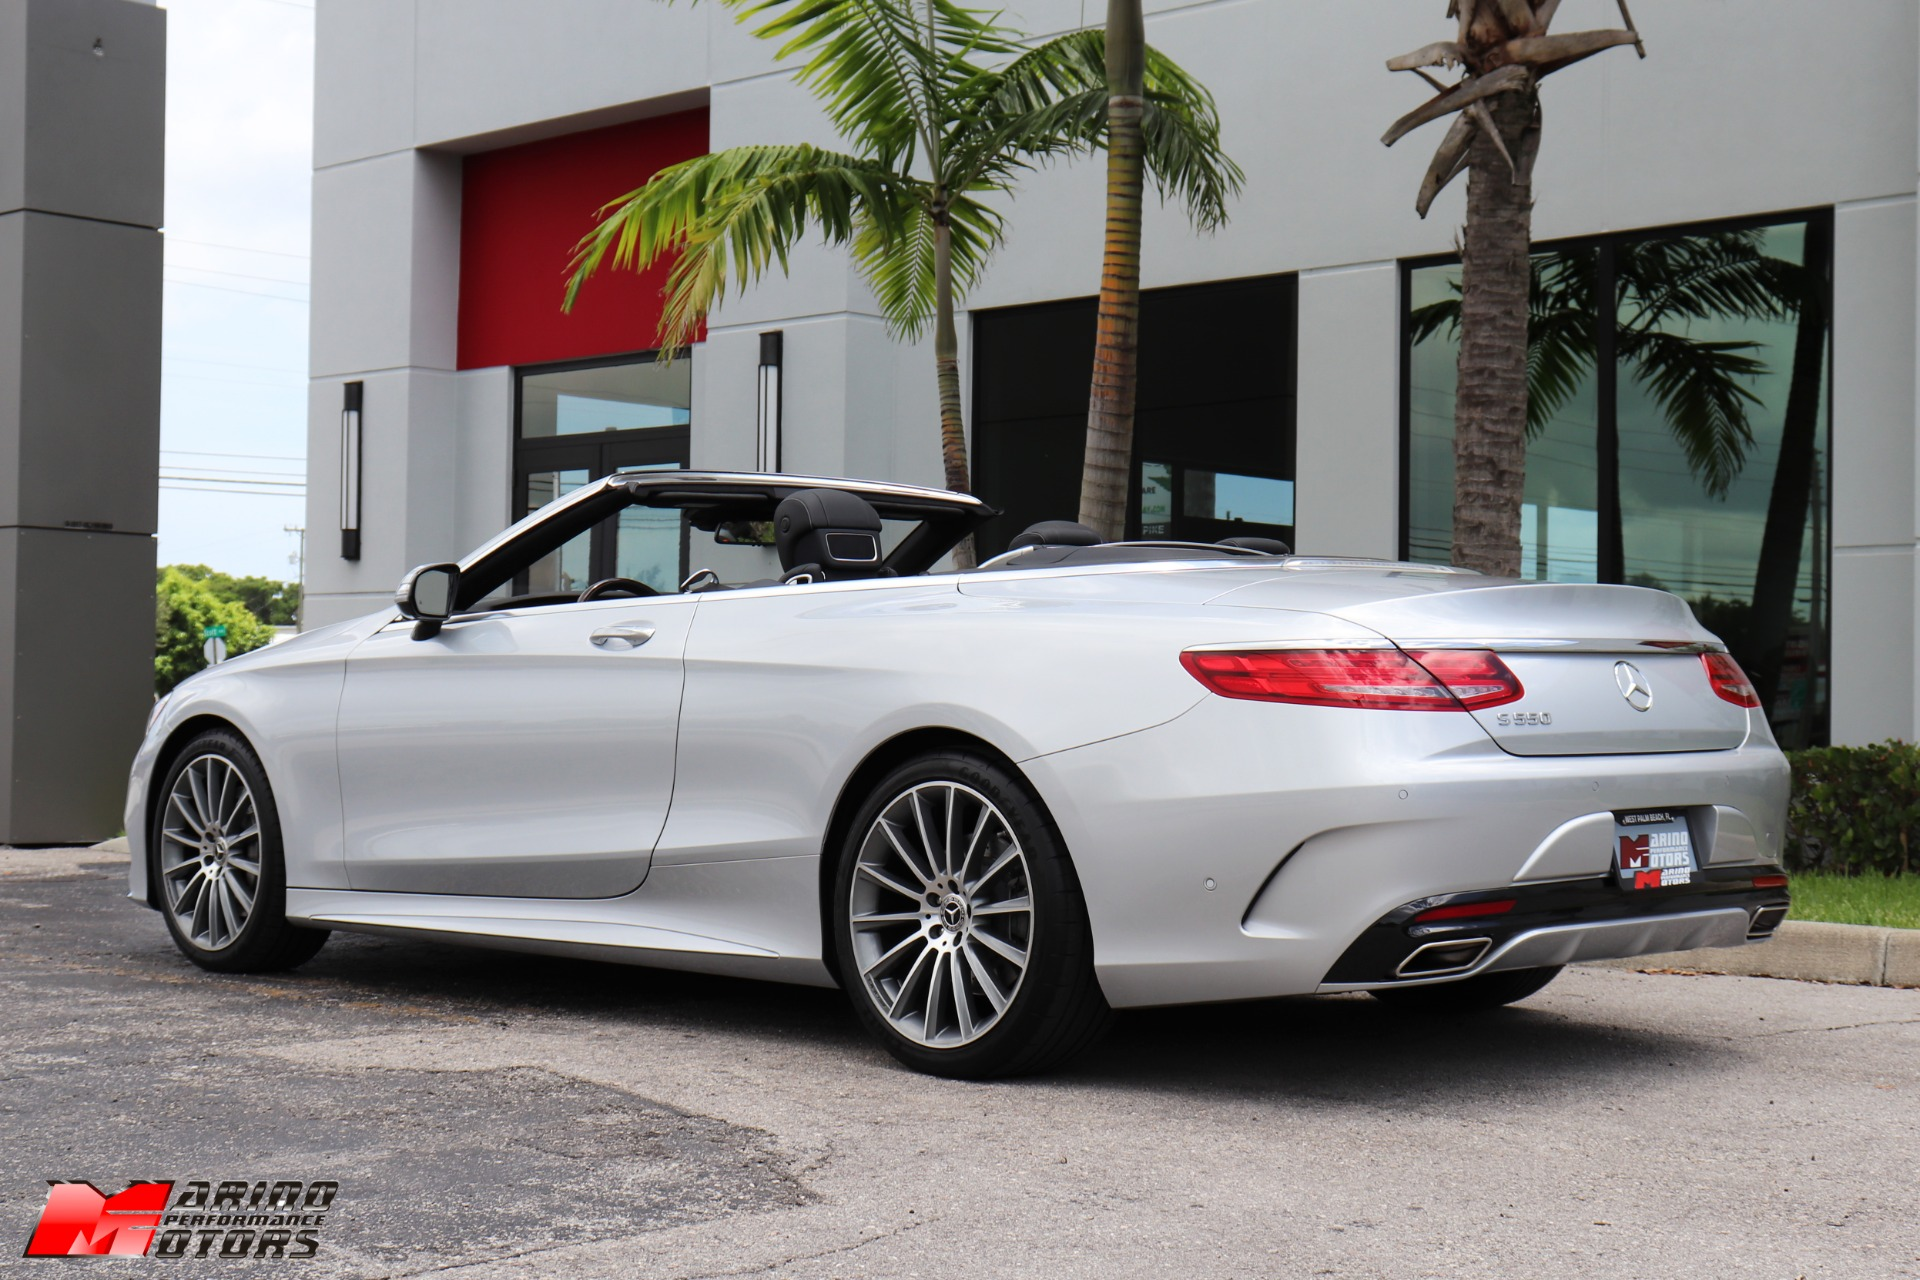 Used-2017-Mercedes-Benz-S-Class-S-550-Cabriolet